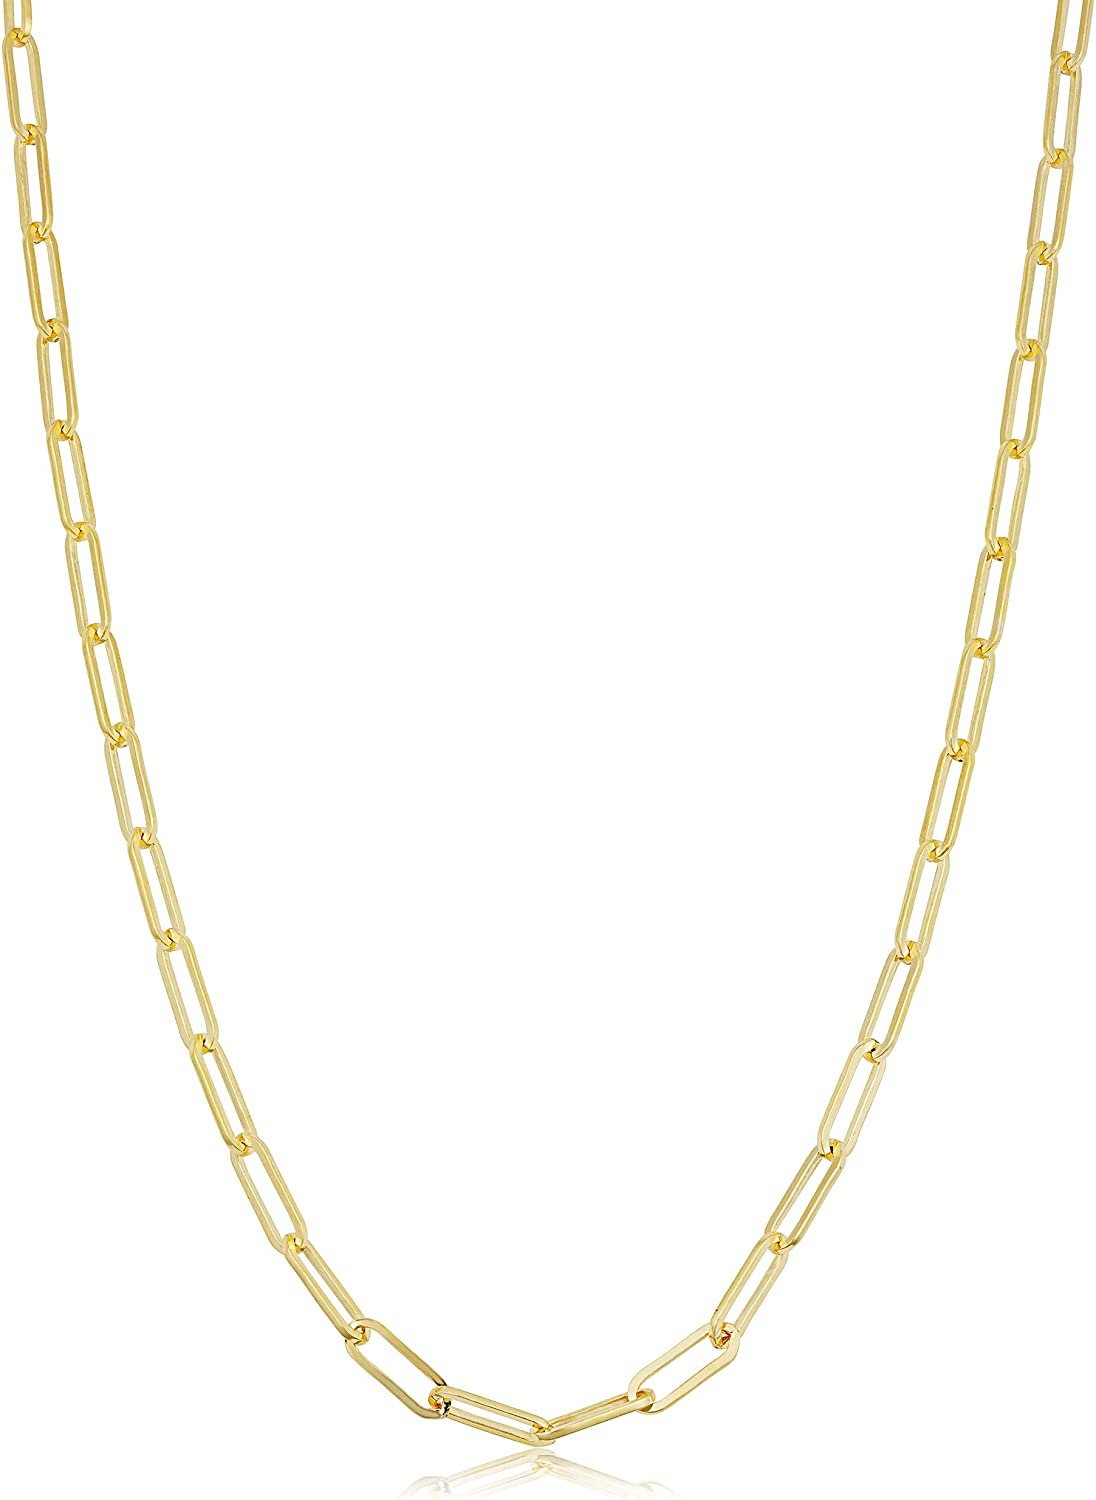 Solid 14k Yellow Gold Max 43% OFF Max 76% OFF Filled 2.5 Chain Paperclip Min mm Necklace